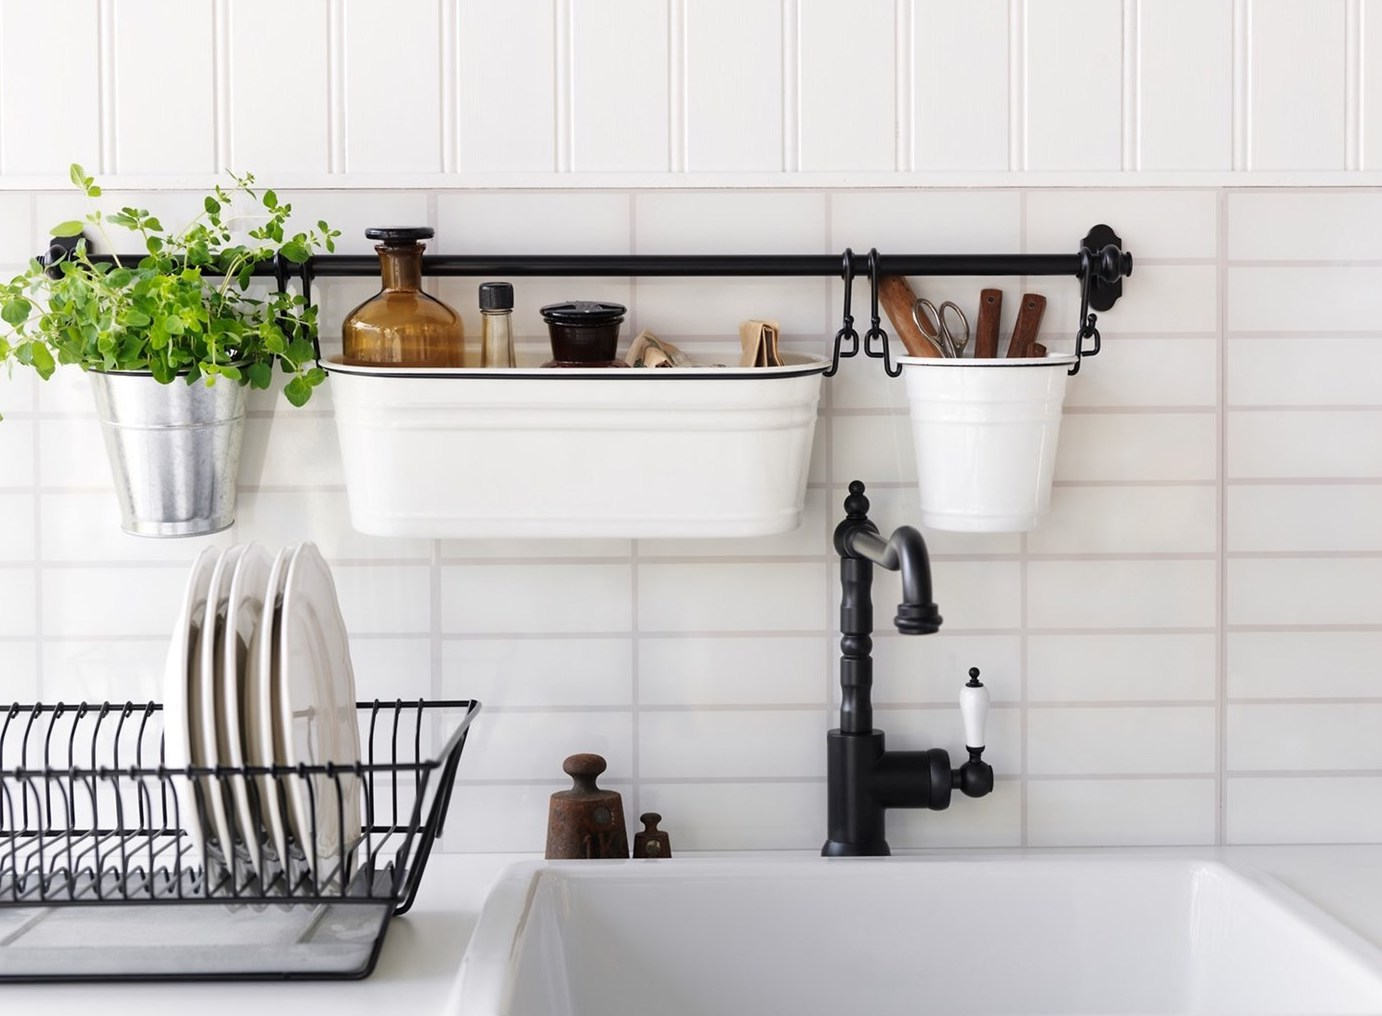 25 storage solutions to try around your home